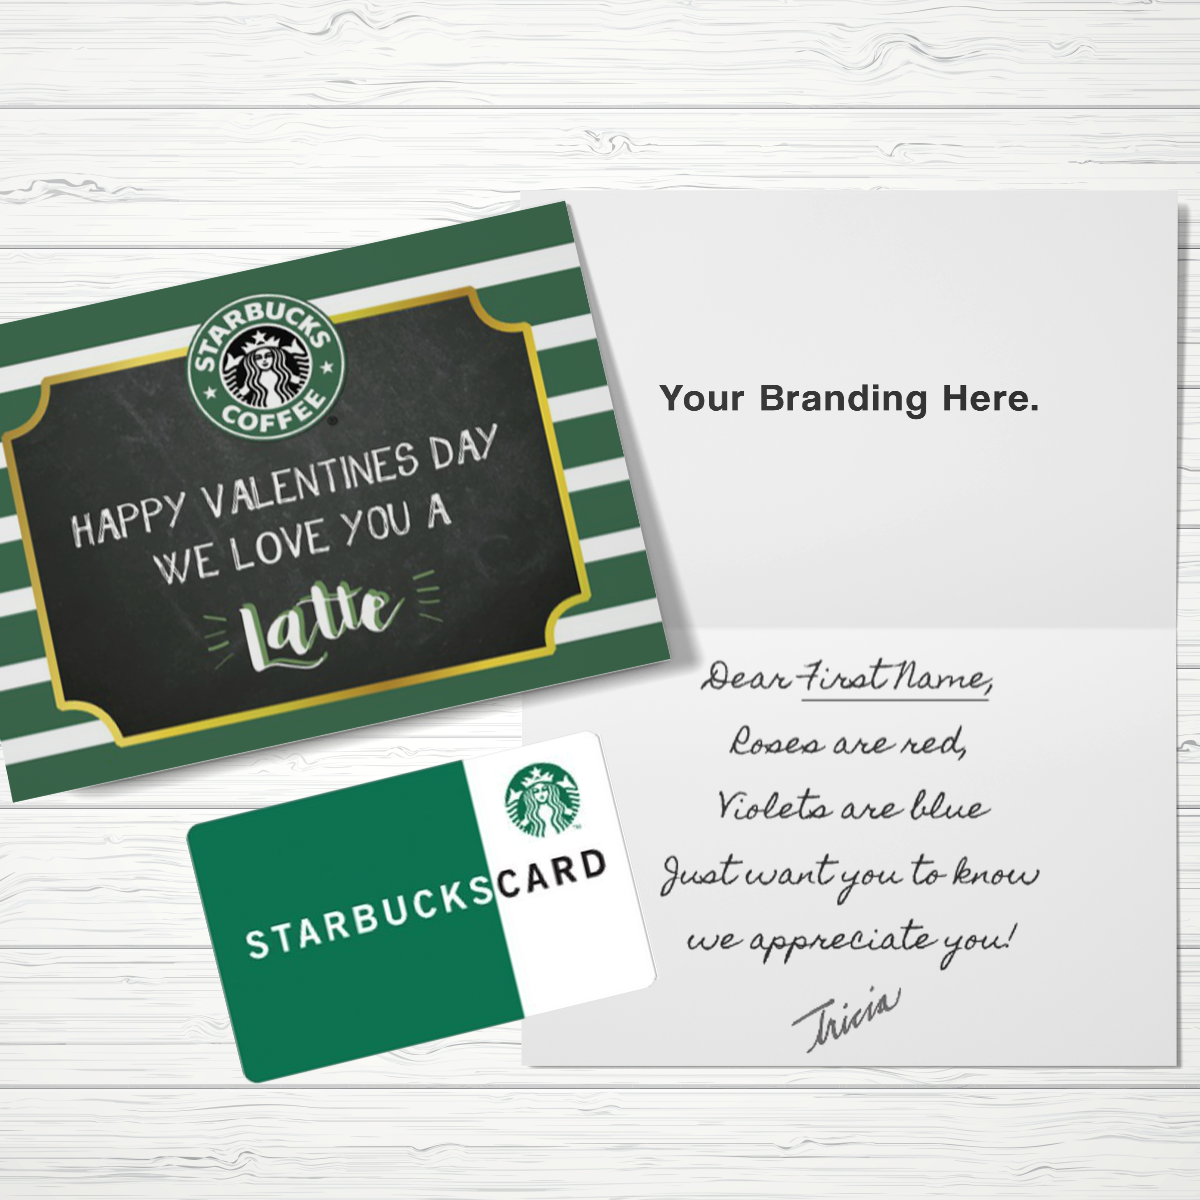 18-Happy-Valentines-Day-with-starbucks-card.png